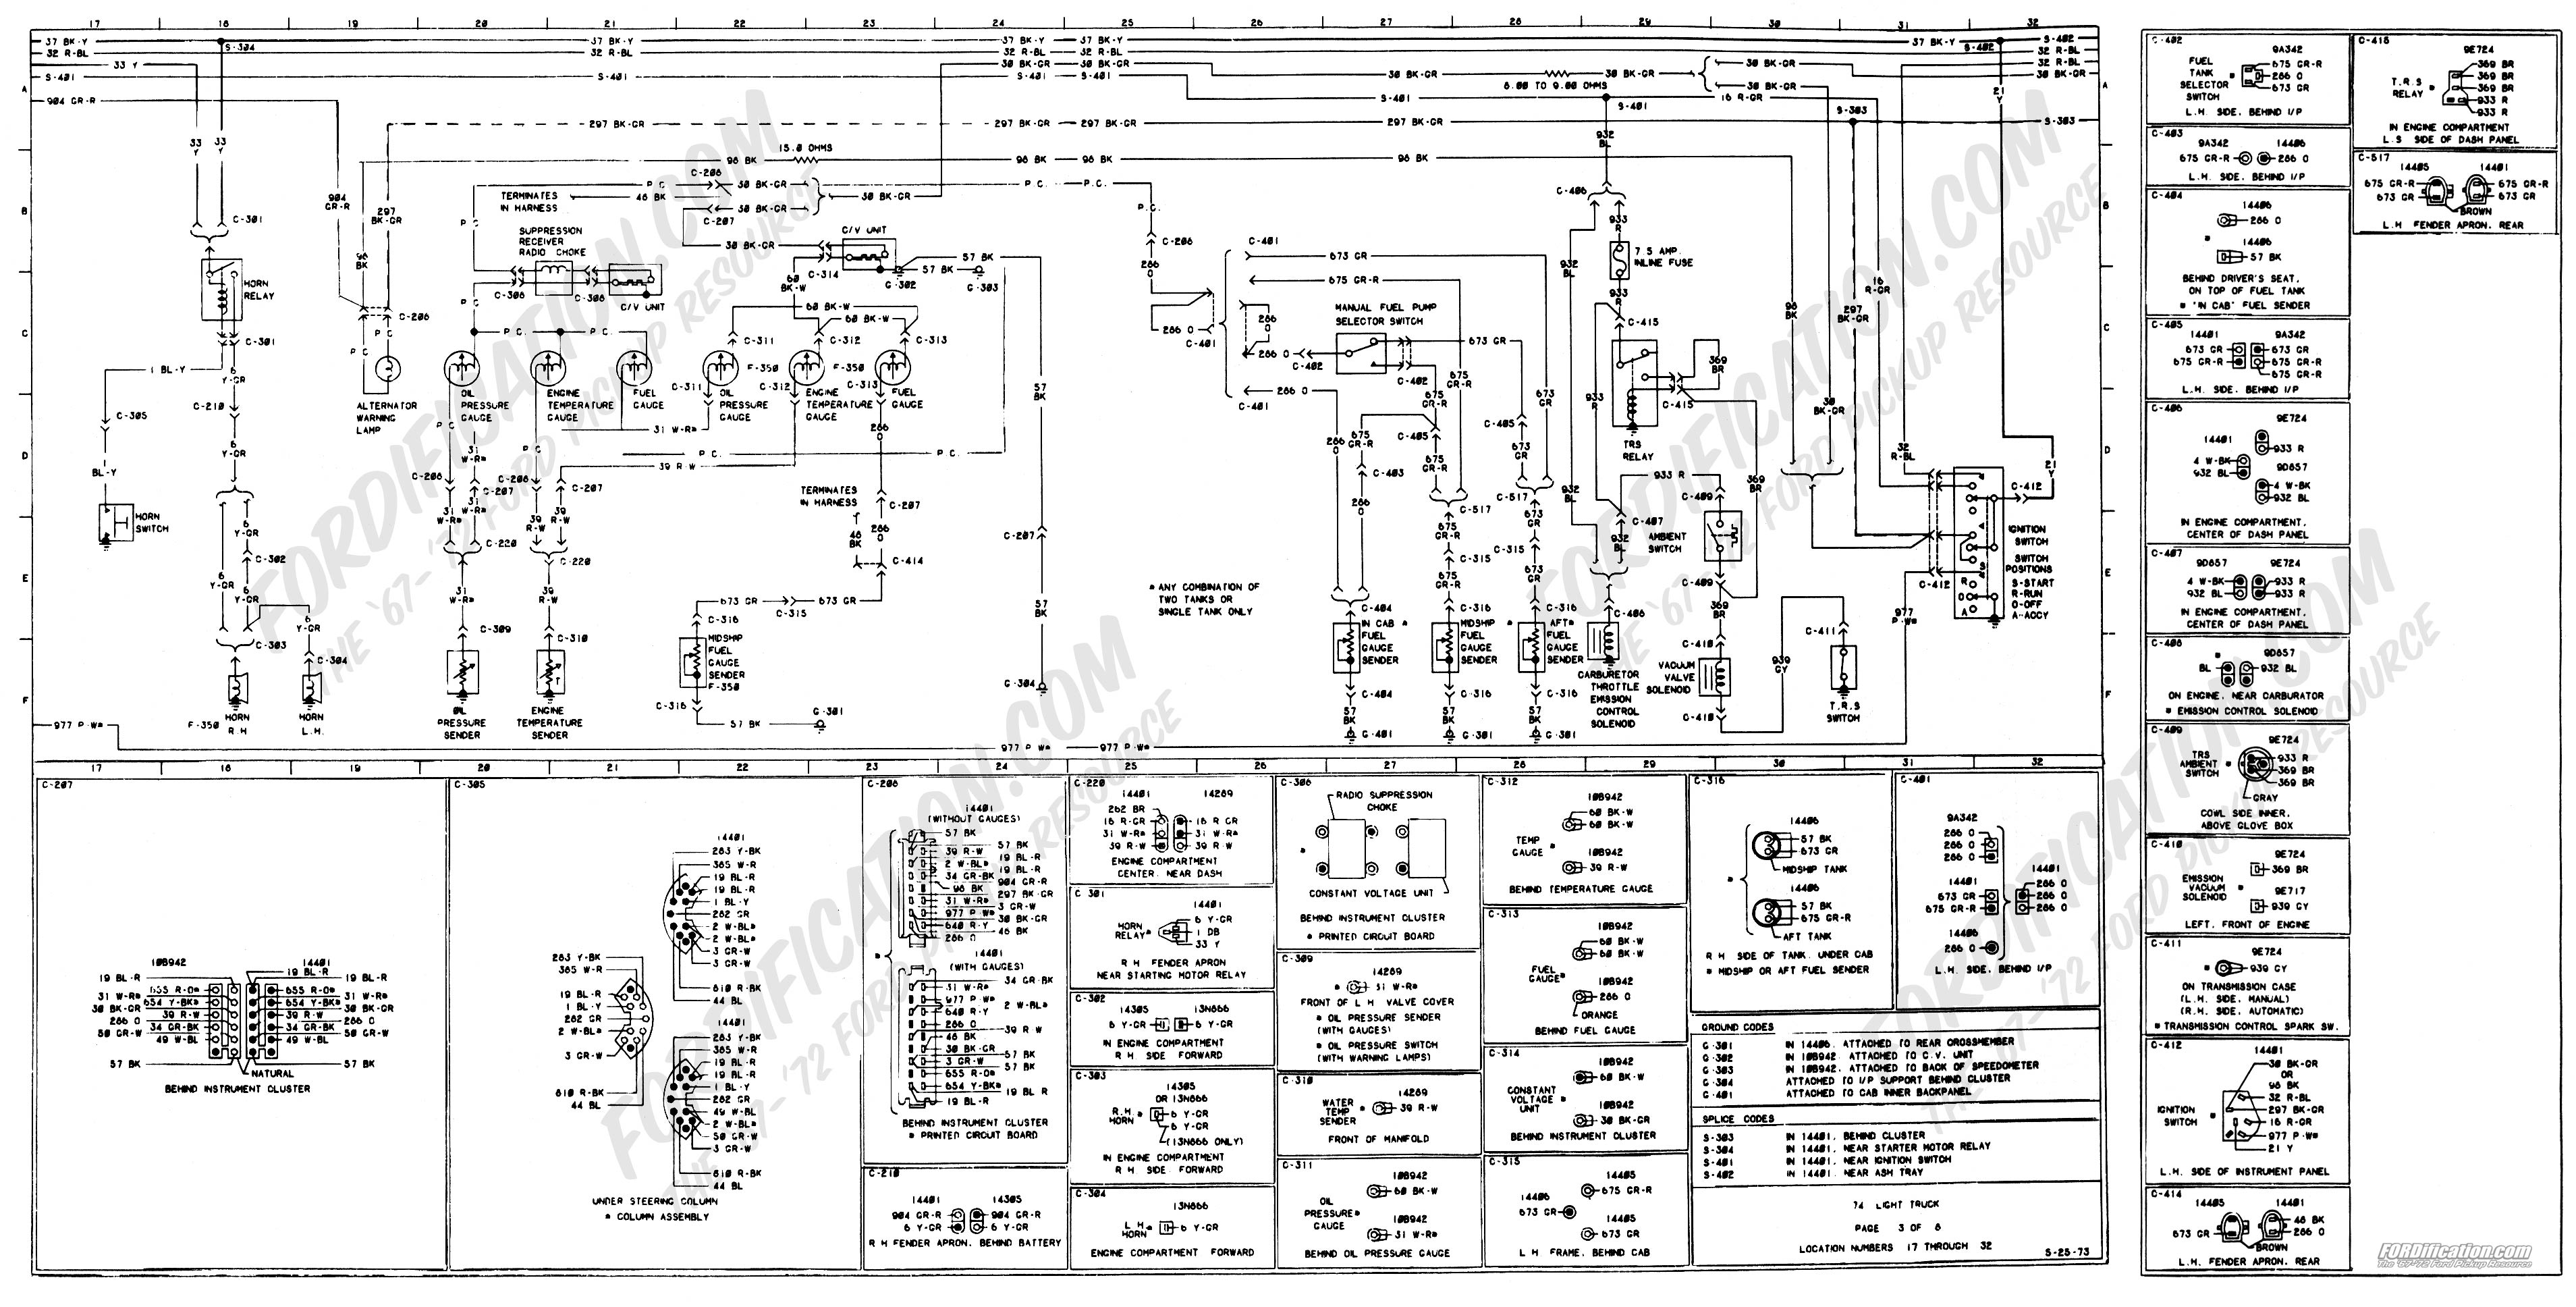 wiring_74master_3of8 1973 1979 ford truck wiring diagrams & schematics fordification net ford electronic ignition wiring diagram at virtualis.co